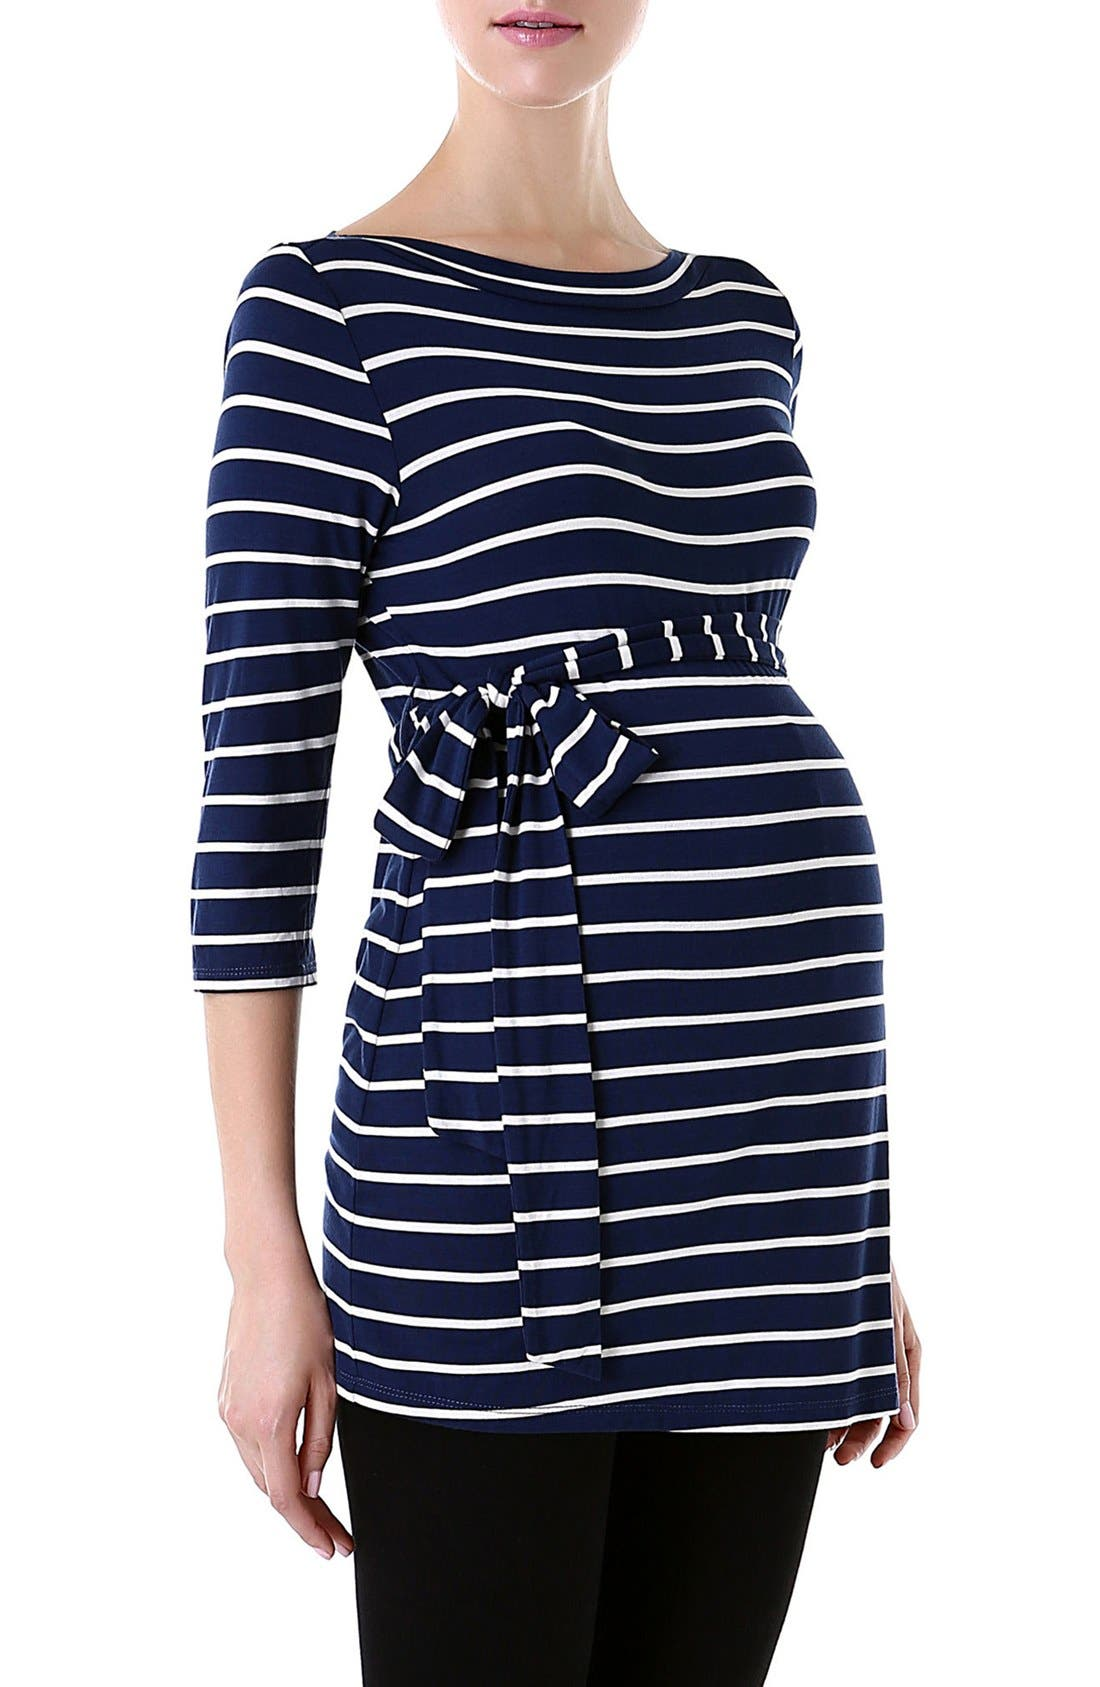 KIMI AND KAI, 'Whitney' Stripe Belted Maternity Top, Main thumbnail 1, color, NAVY/ IVORY